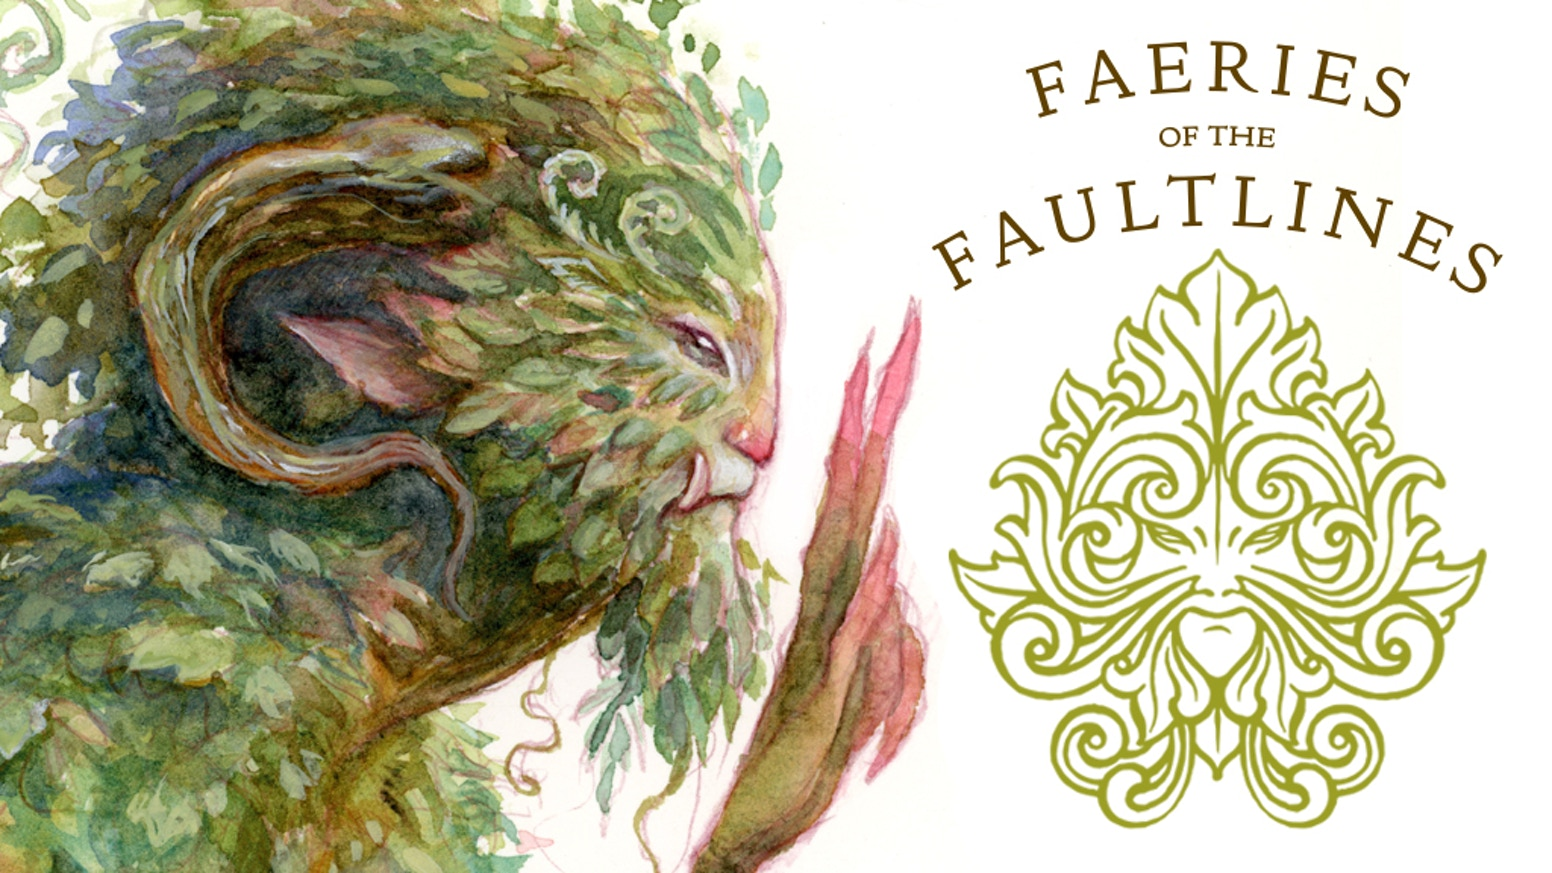 Step into the Faultlines, a world filled with faeries and creatures from the Other World in this illustrated art book by Iris Compiet